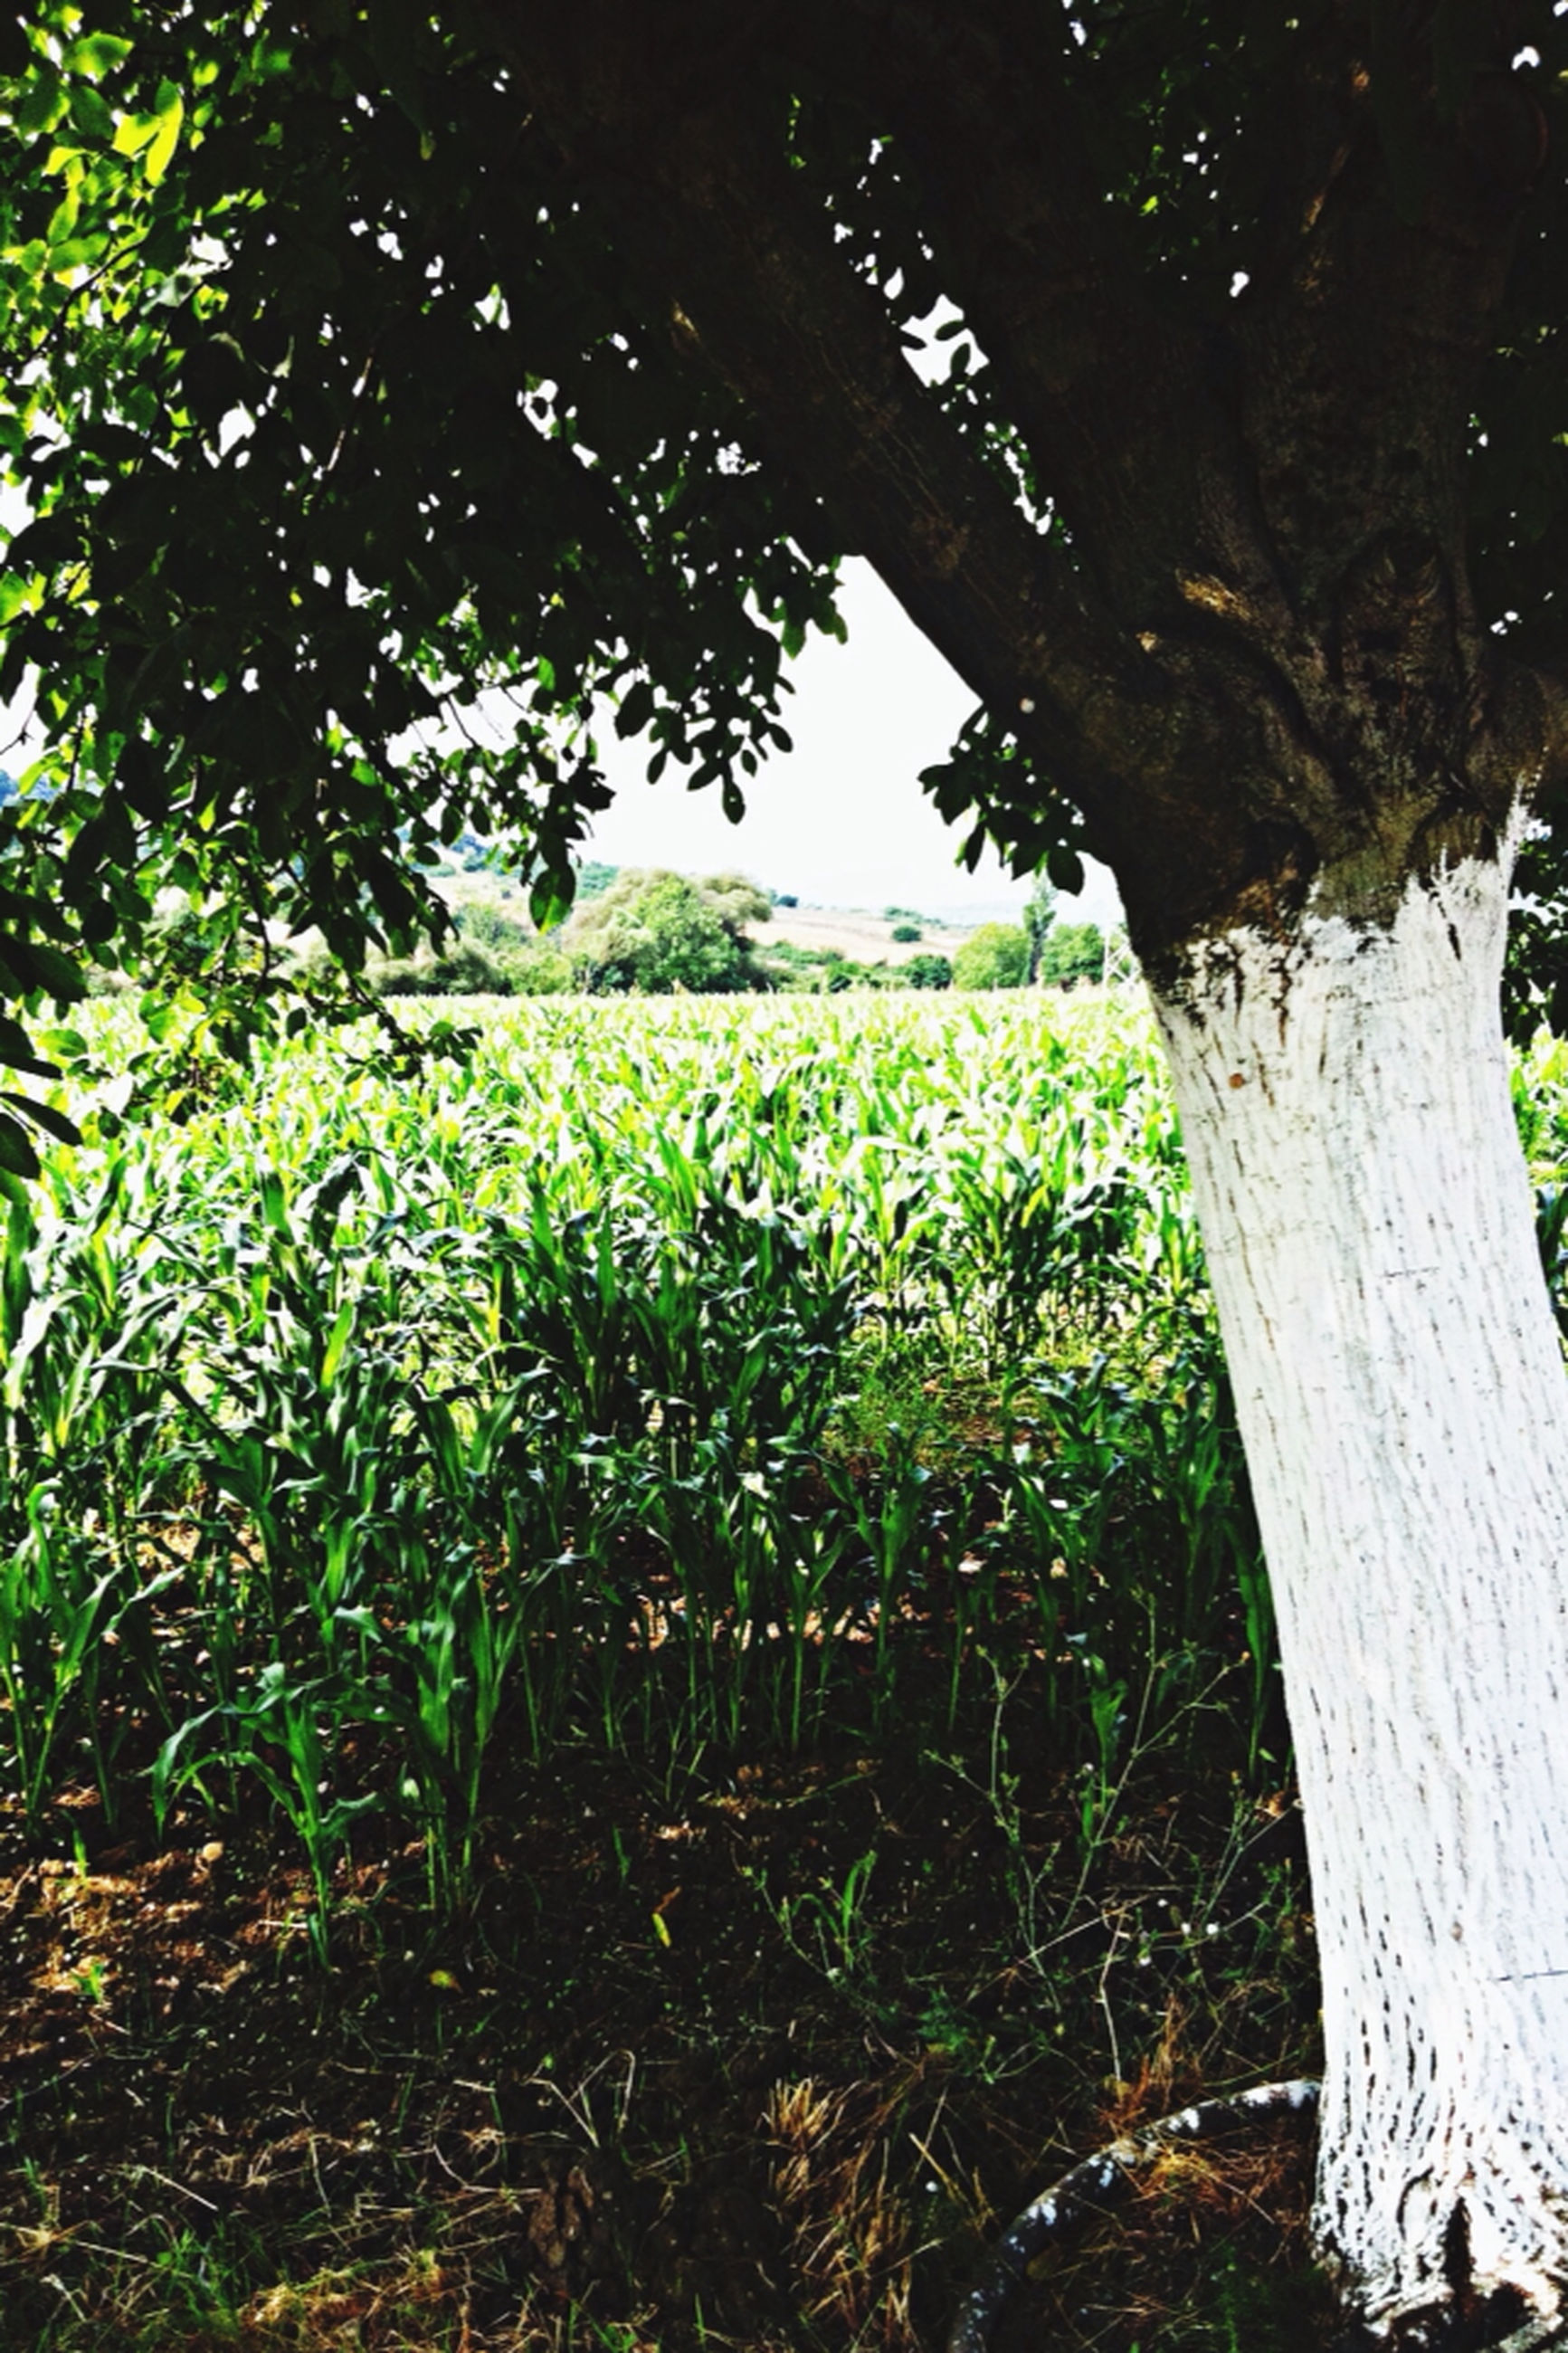 tree, growth, tranquility, green color, nature, tranquil scene, grass, tree trunk, field, beauty in nature, landscape, branch, scenics, plant, day, green, growing, sunlight, outdoors, grassy